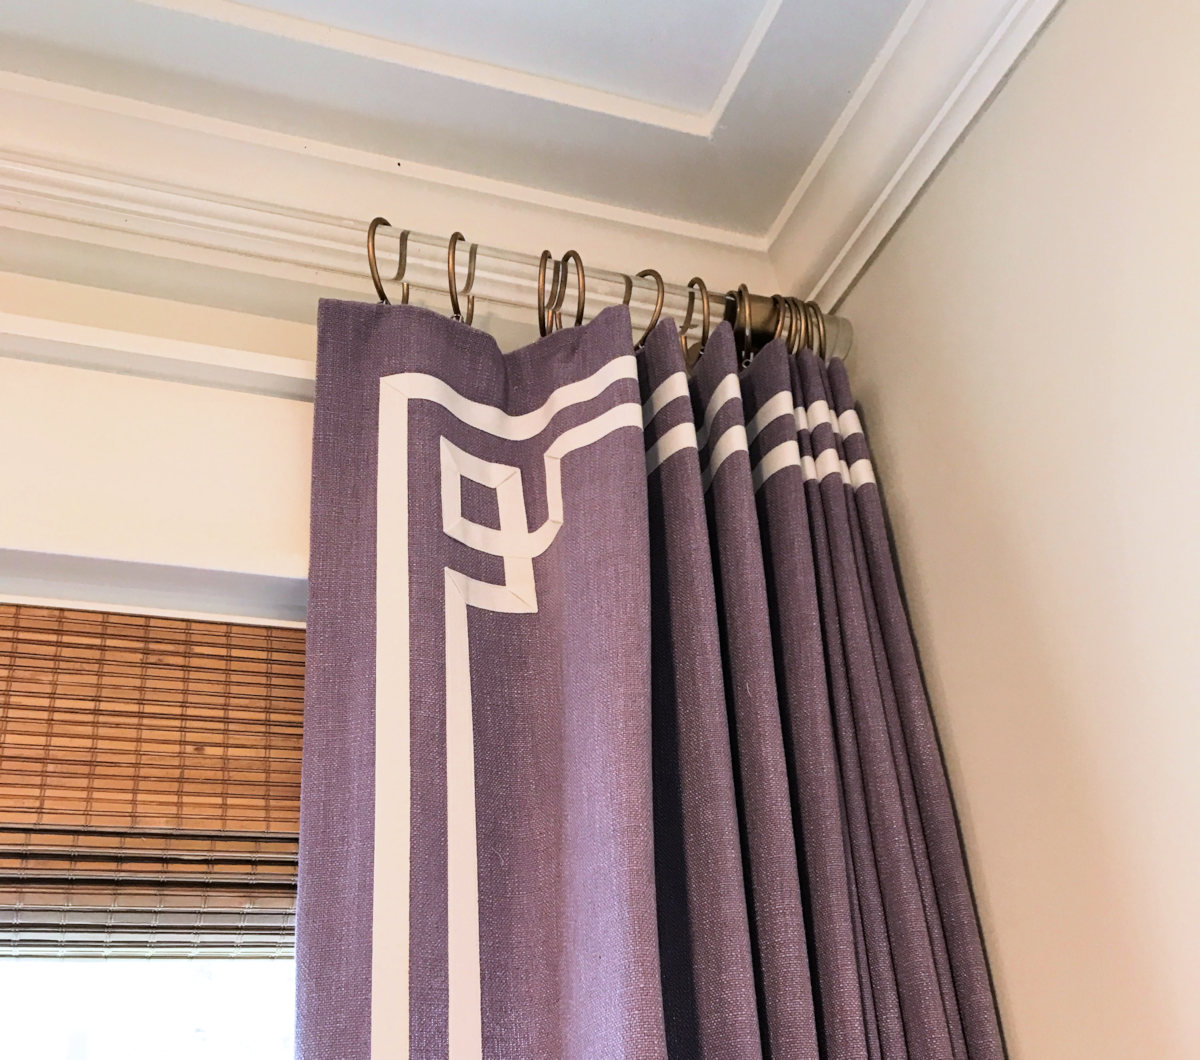 Ribbon Trim Curtains Diy Greek Key Trim Curtains Video Create A Greek Key Design With